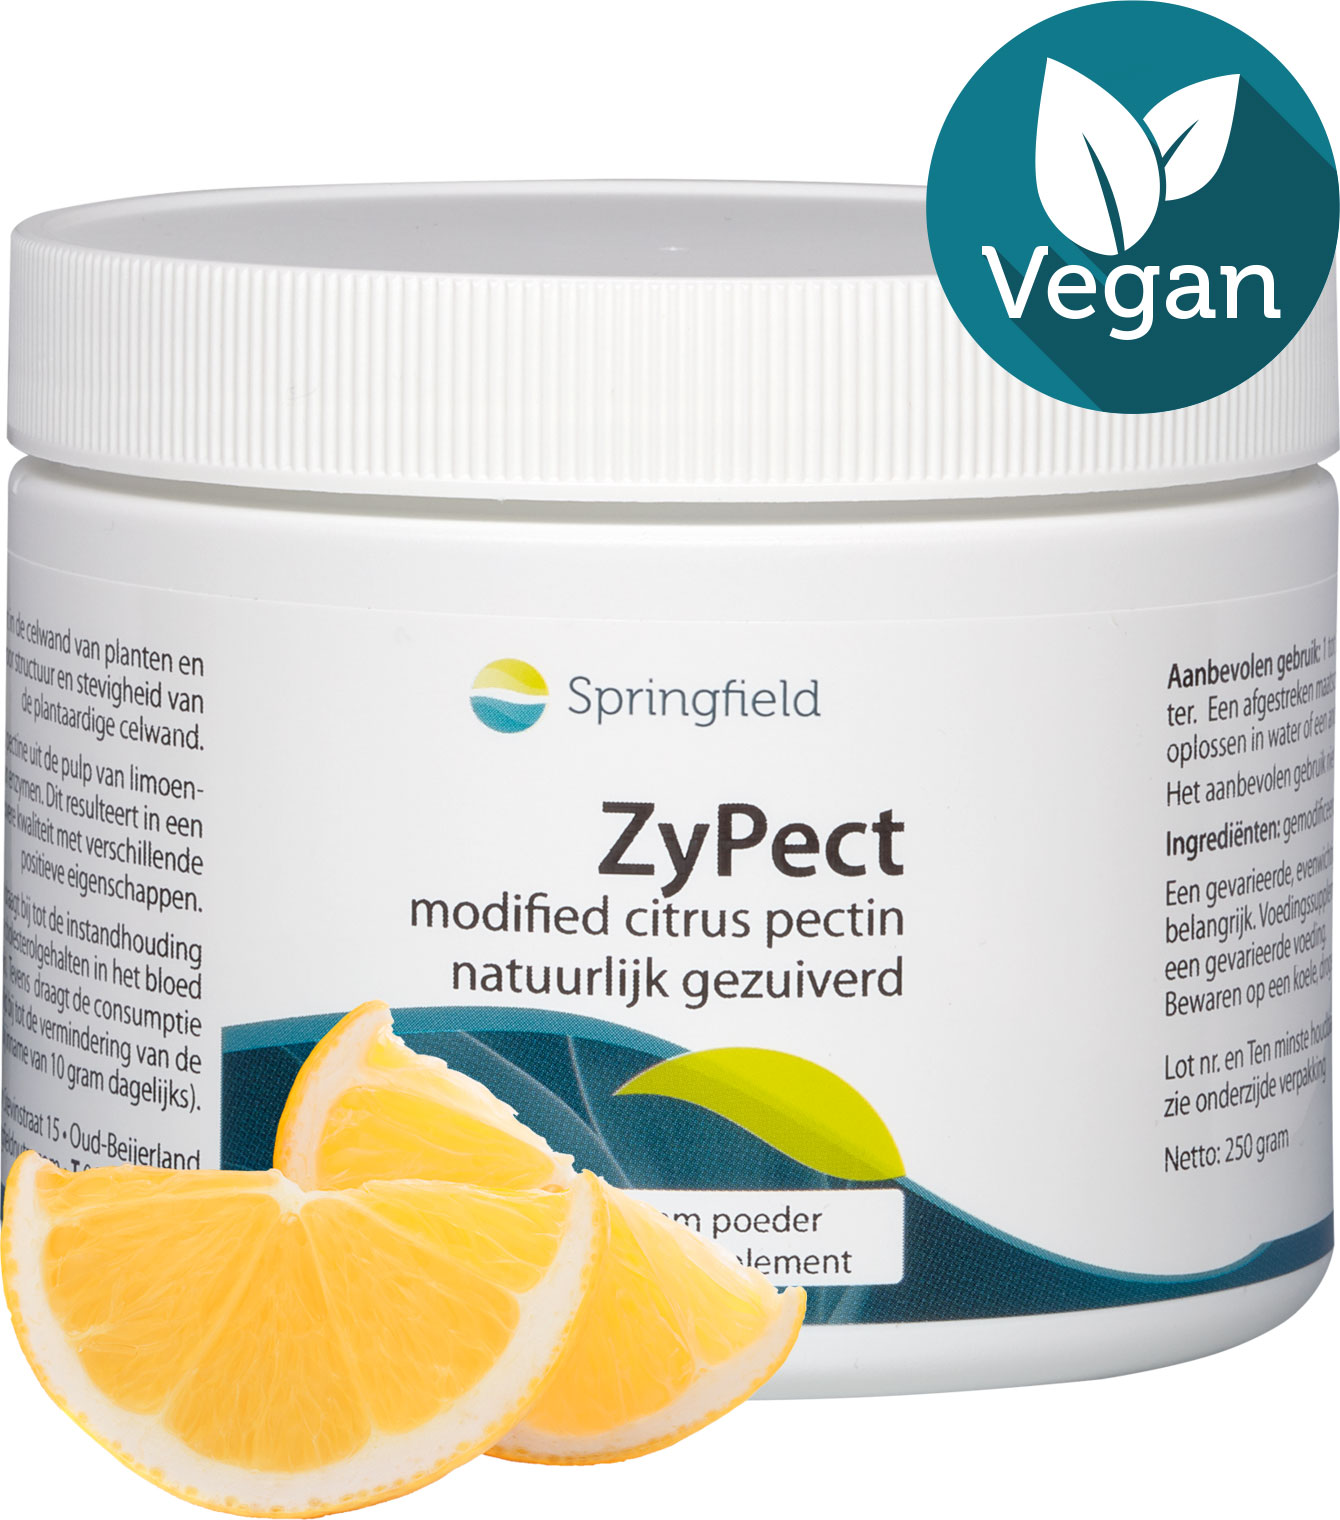 Zypect-gemodificeerde-citrus-pectine-citroenen-250g-vegan